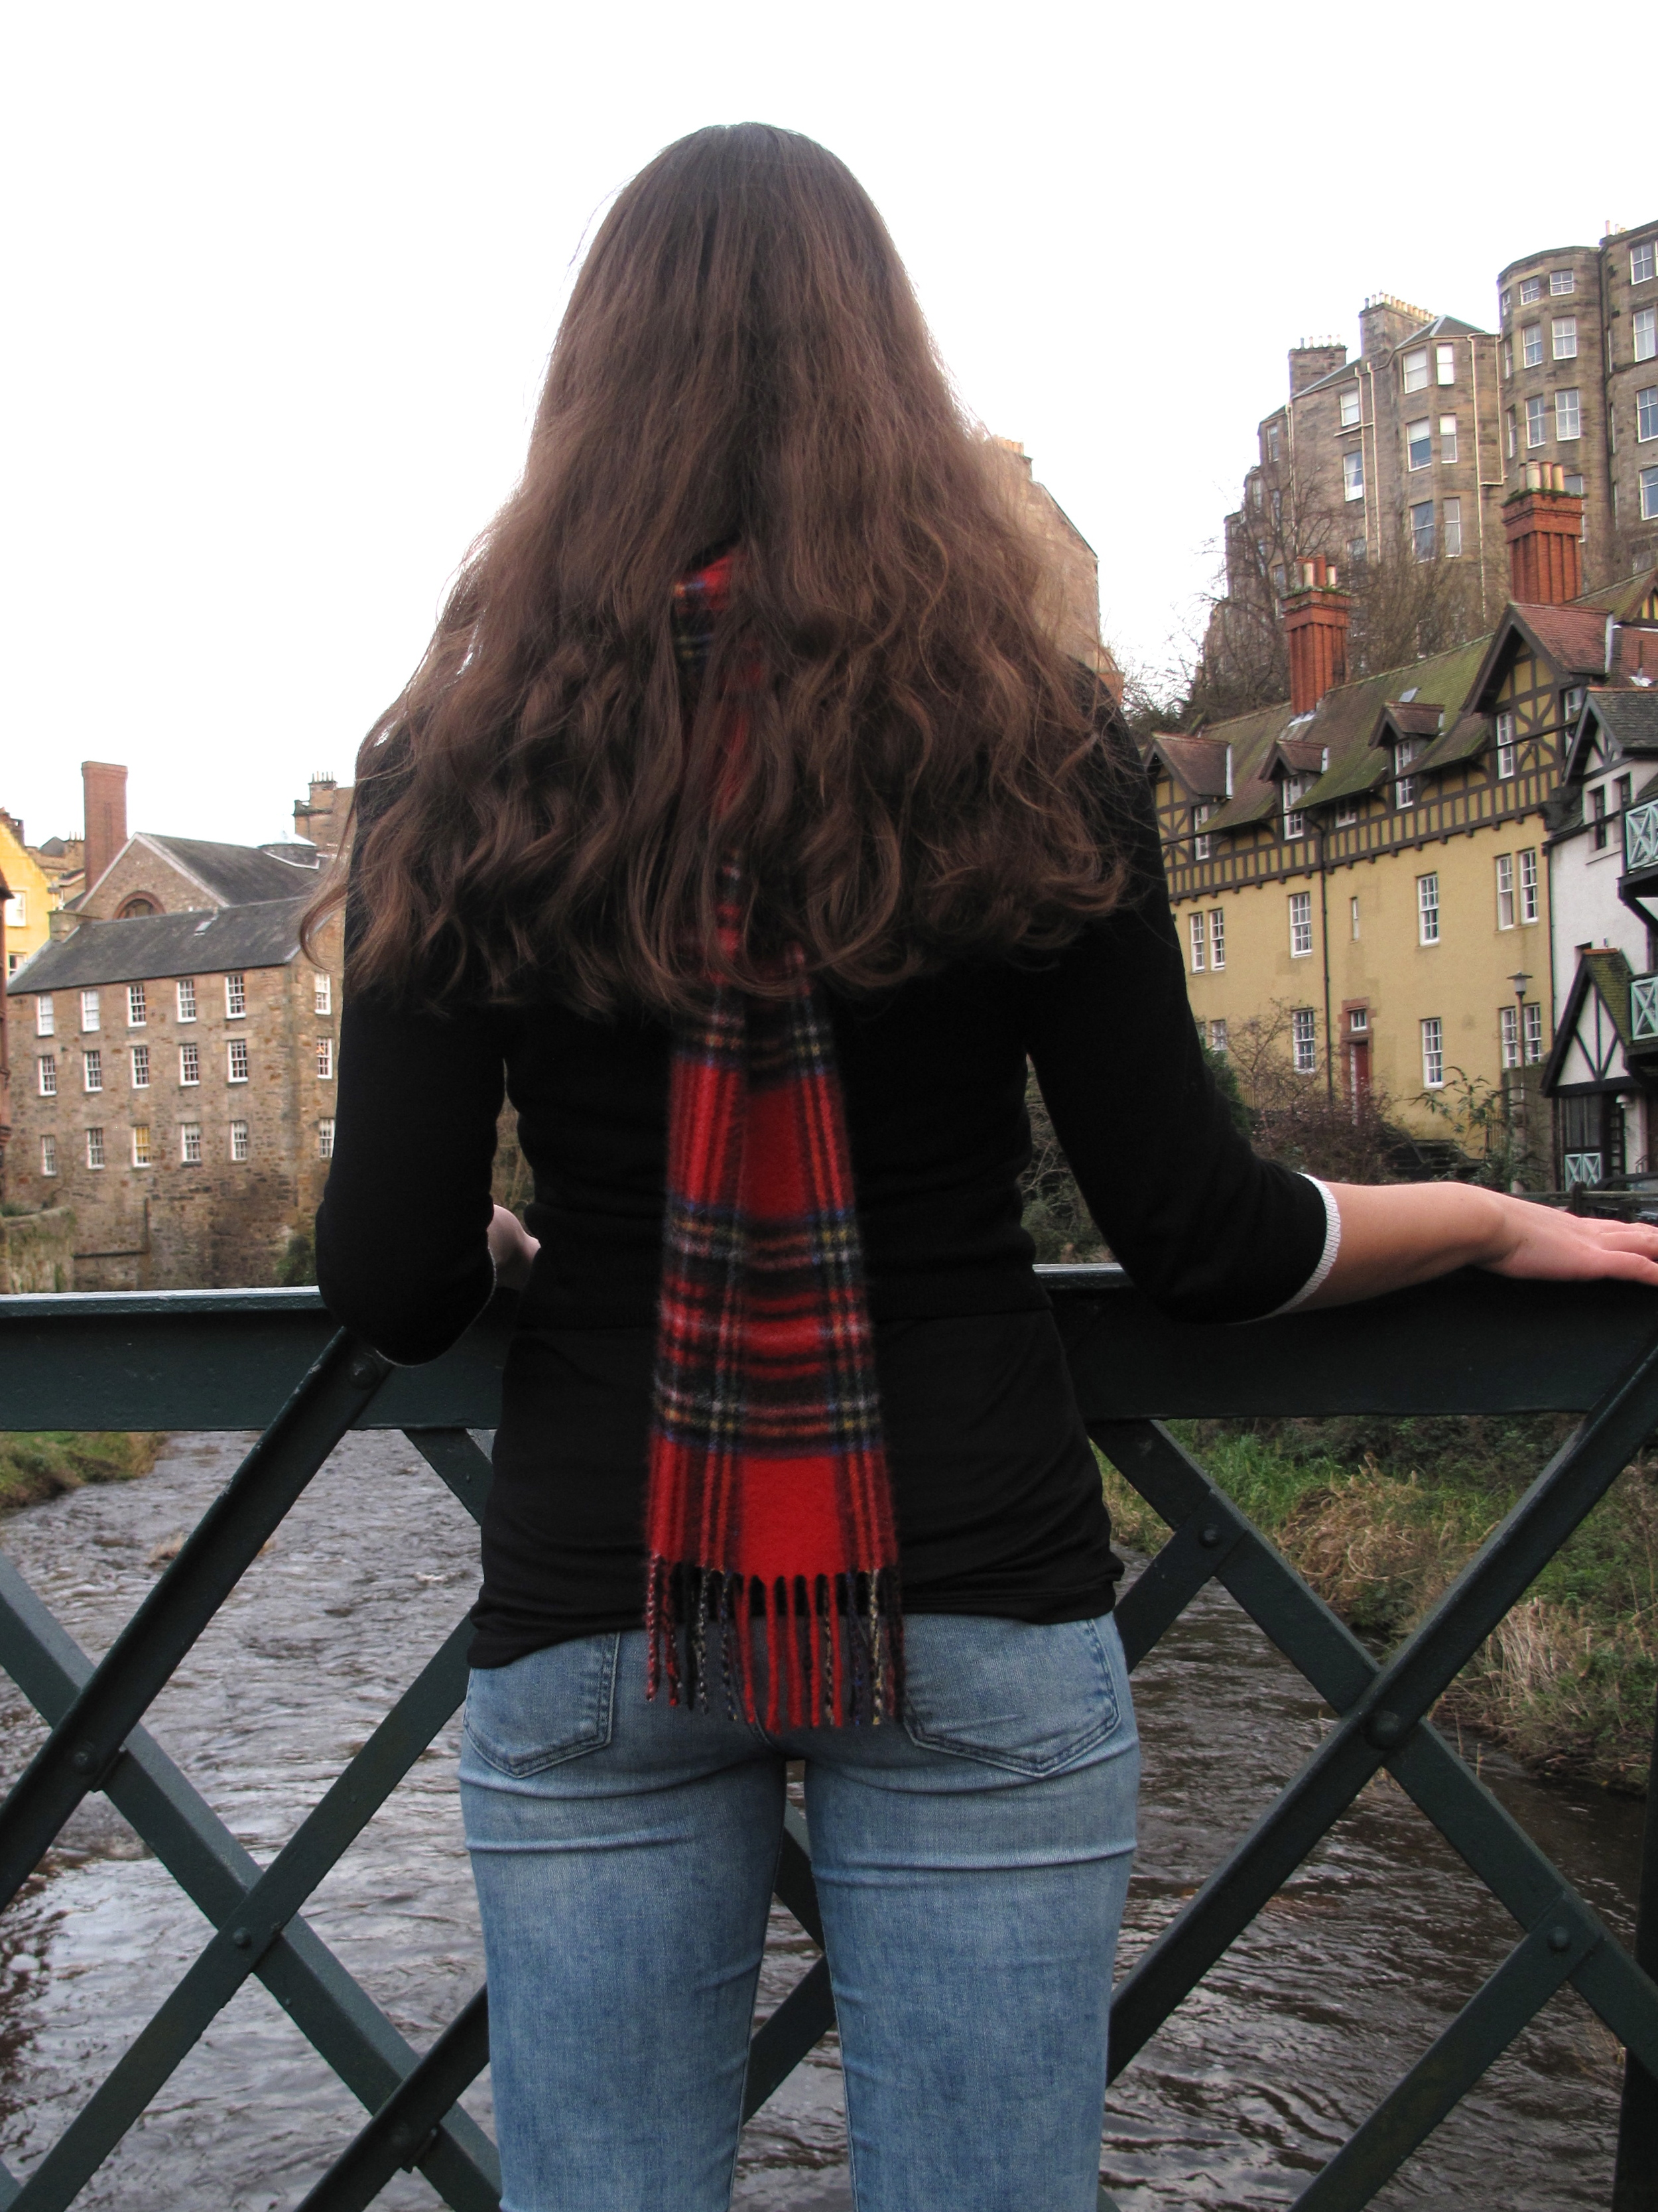 Standing on the bridge of the river in Dean Village, winter time with a scarf.